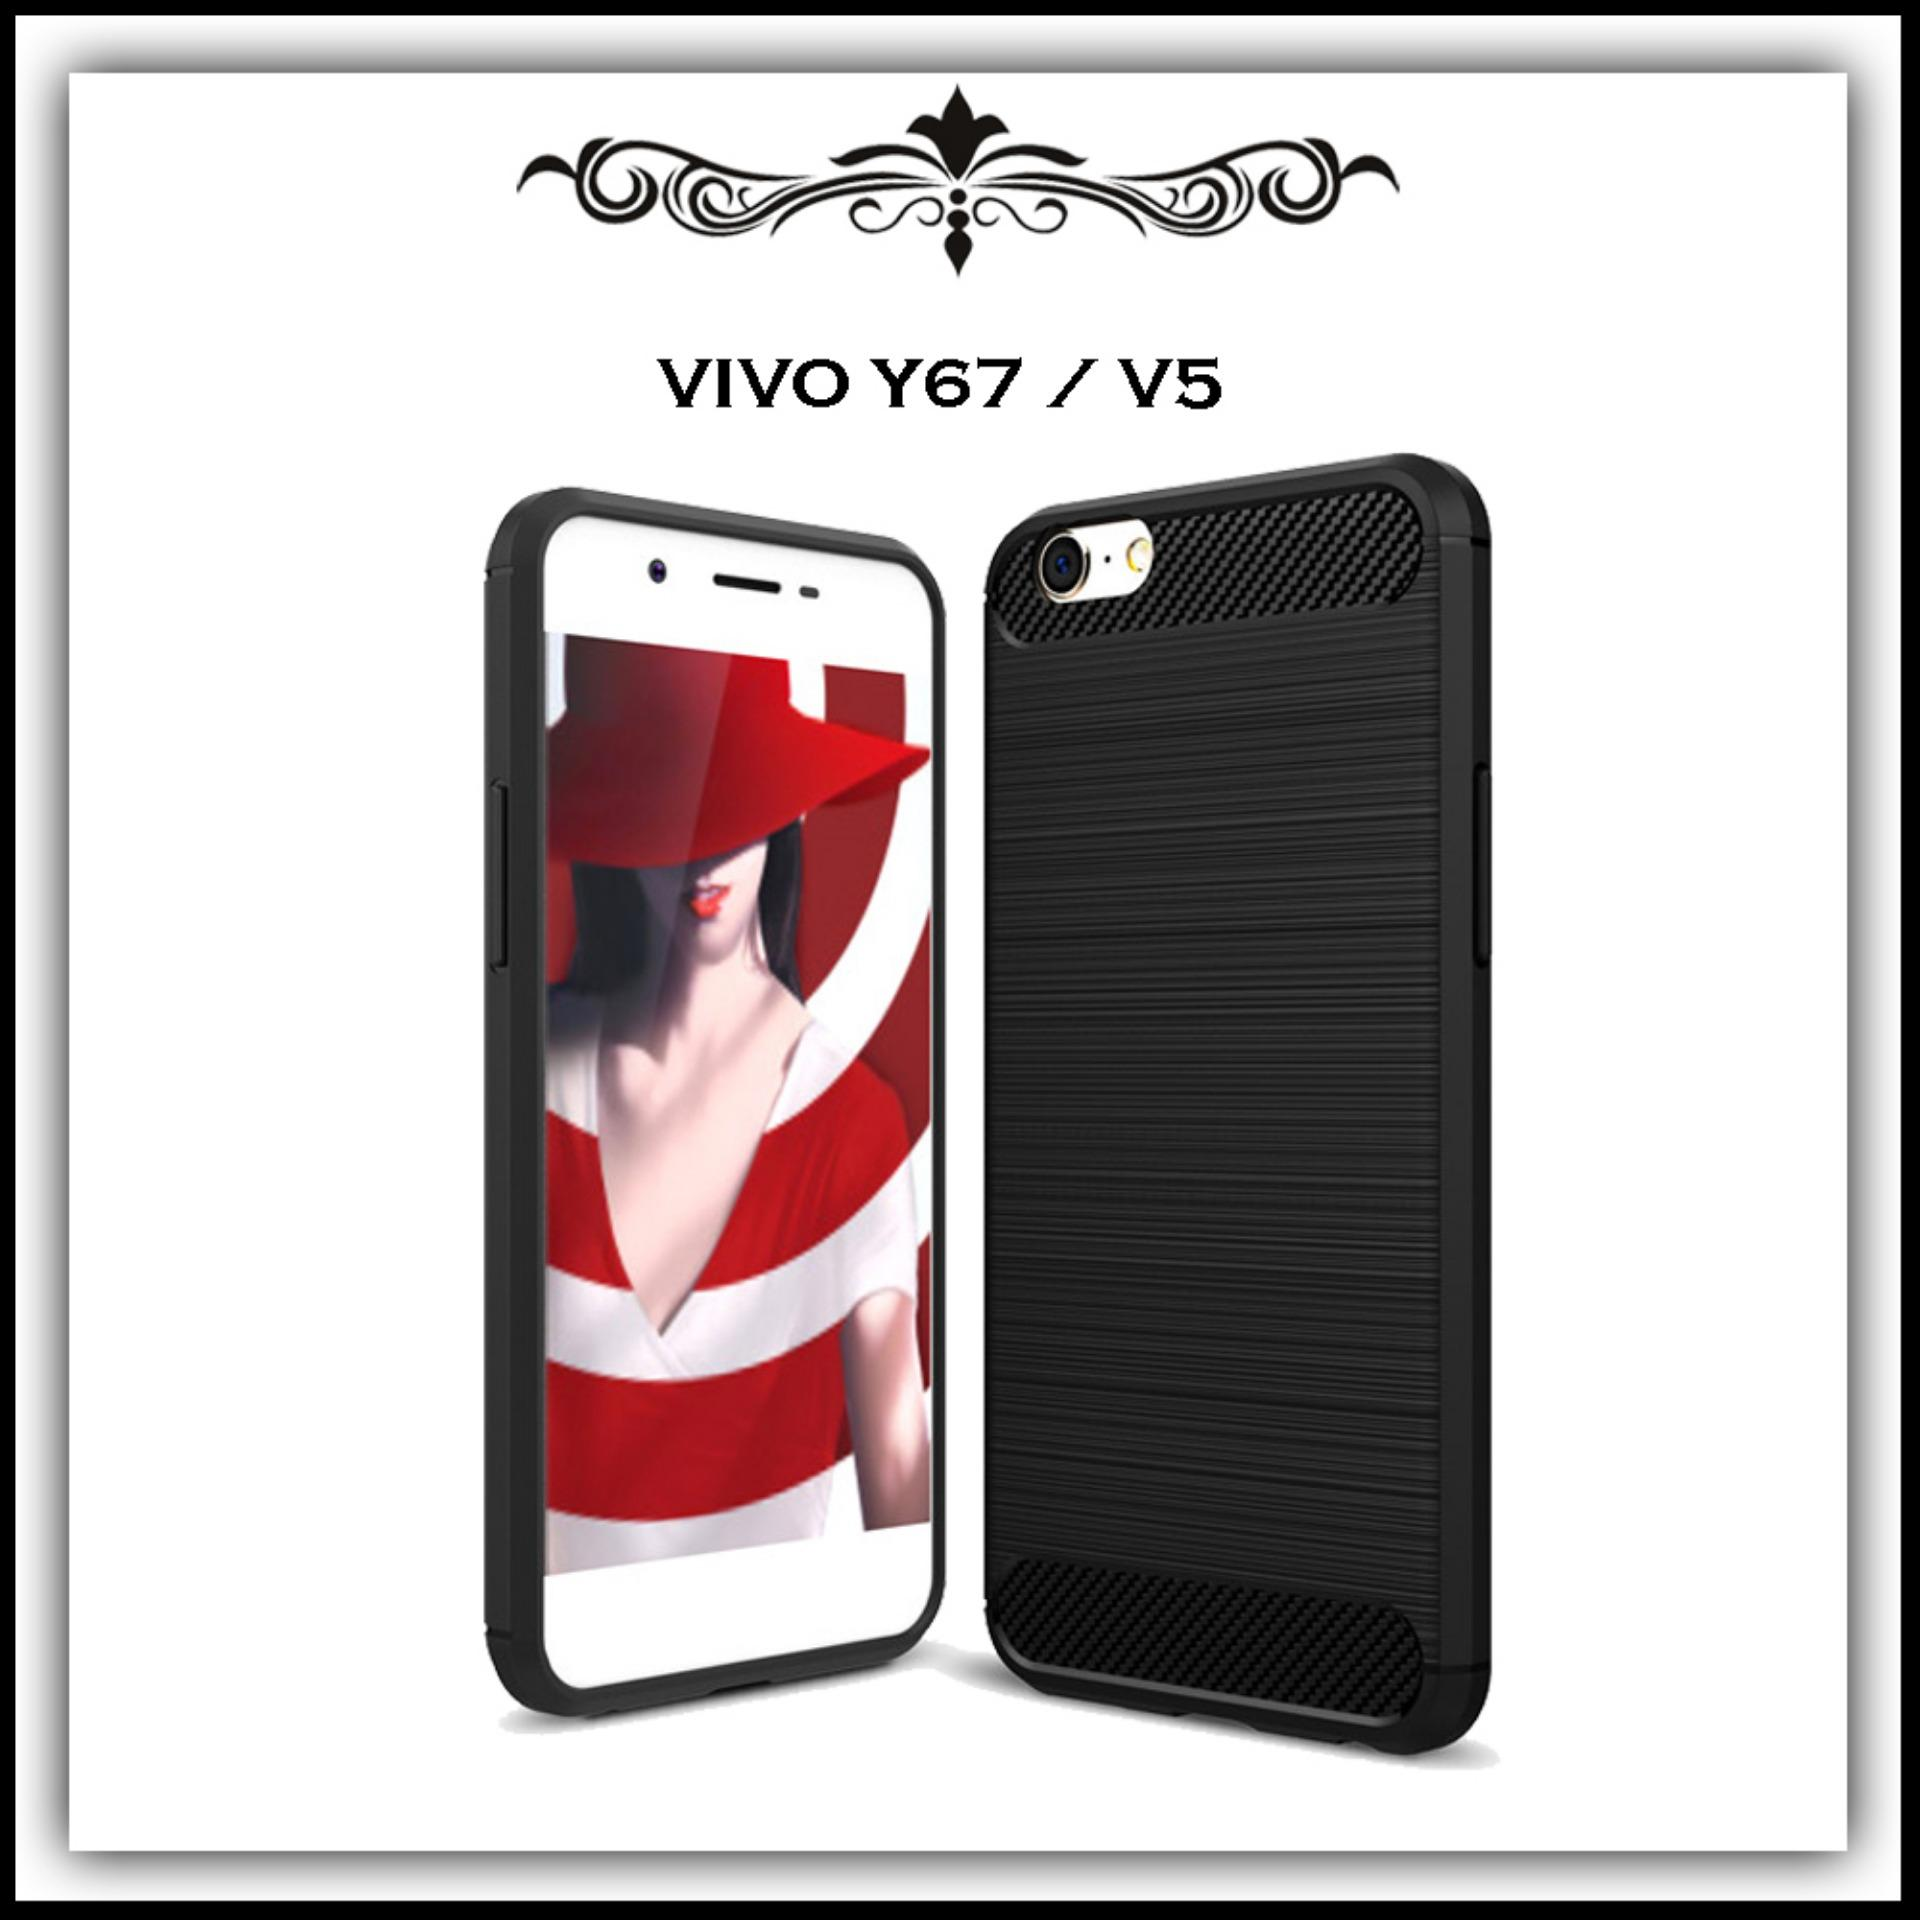 Mushroom Case Ipaky Carbon Fiber Shockproof Hybrid Elegant Case for Vivo Y67 / V5